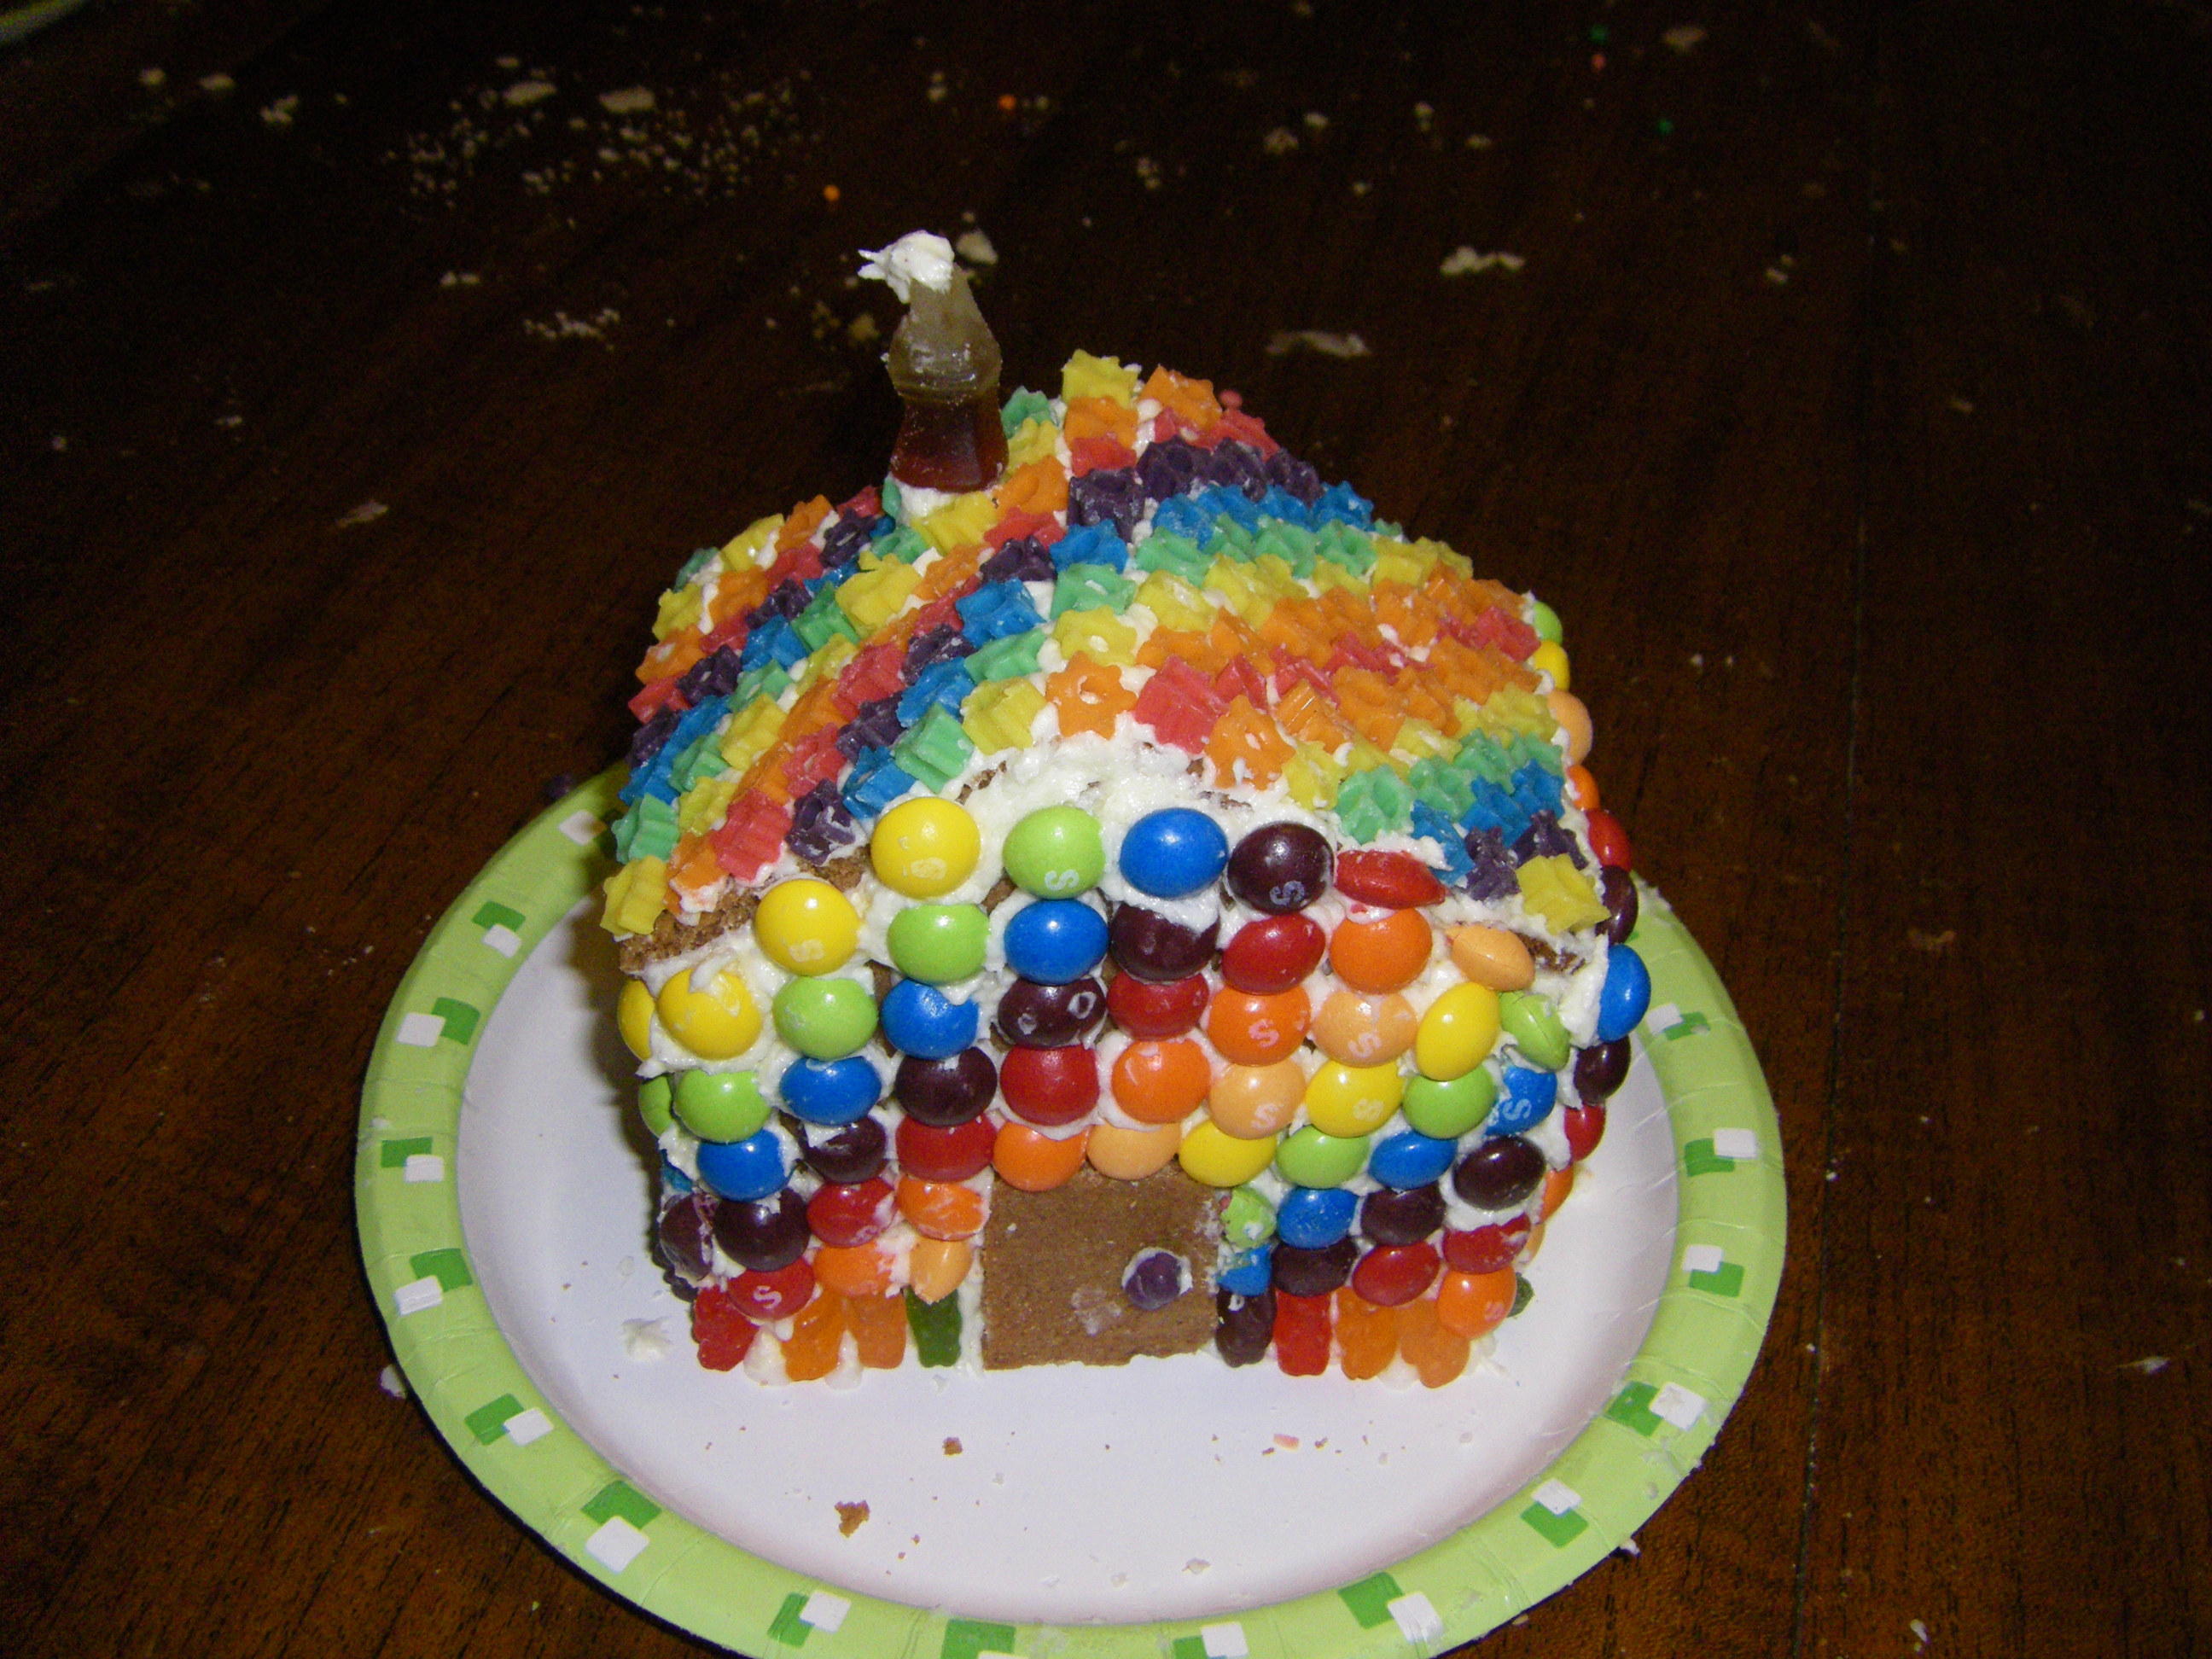 Selling Cakes From Home California